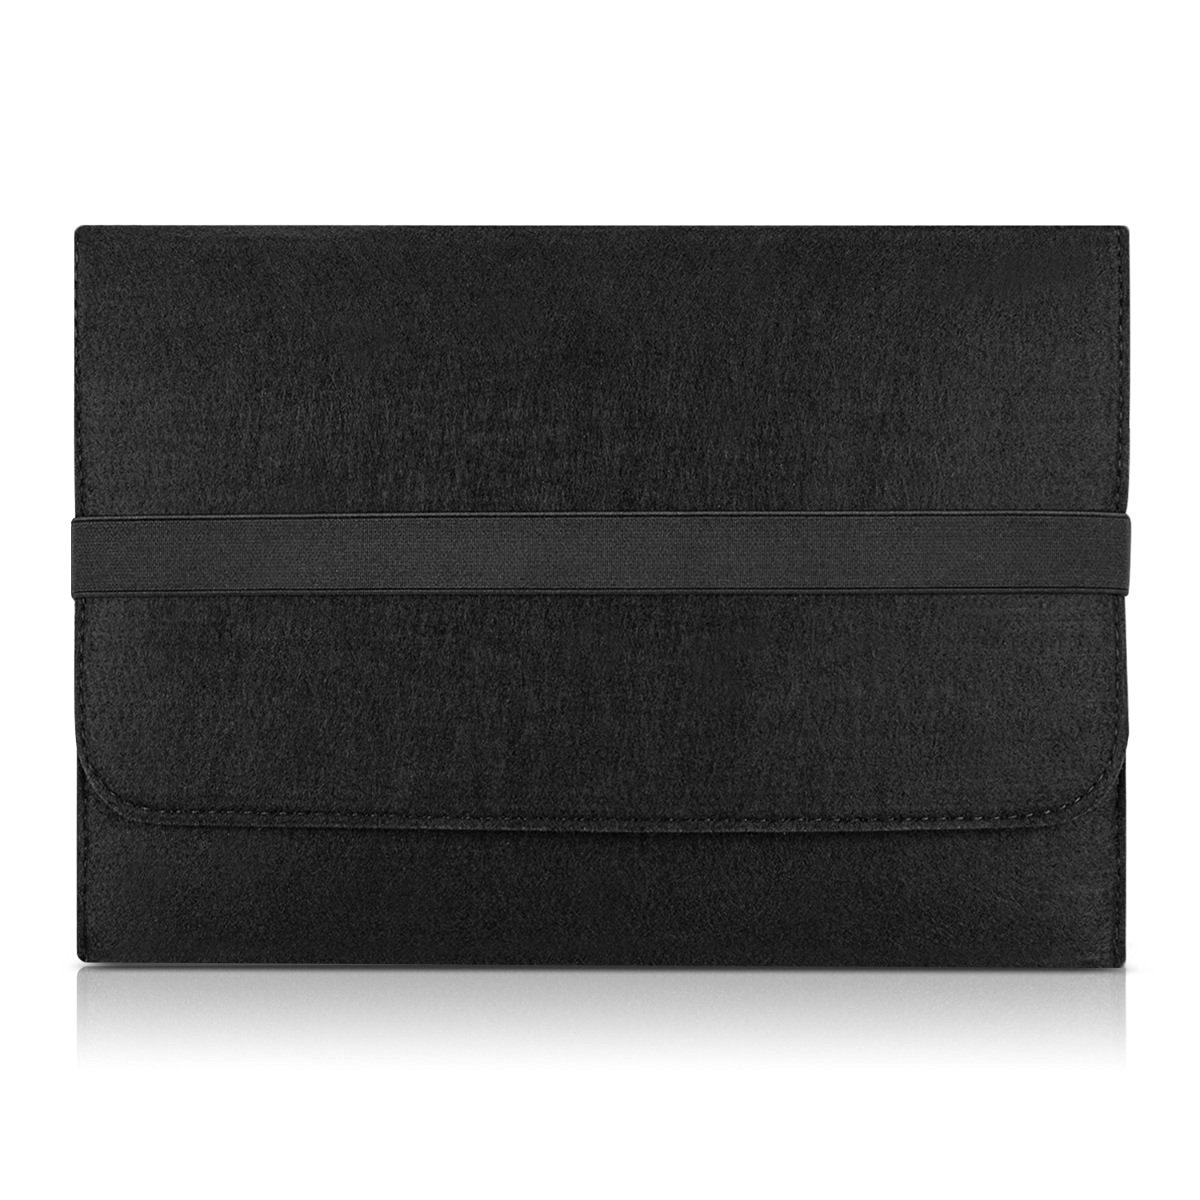 """kwmobile laptop cover felt case for 12,5"""" 13"""" 13,3"""" Laptop / Ultrabook - notebook bag protective cover in black with internal pockets Inner dimensions: approx. 34,5 x 26 cm"""